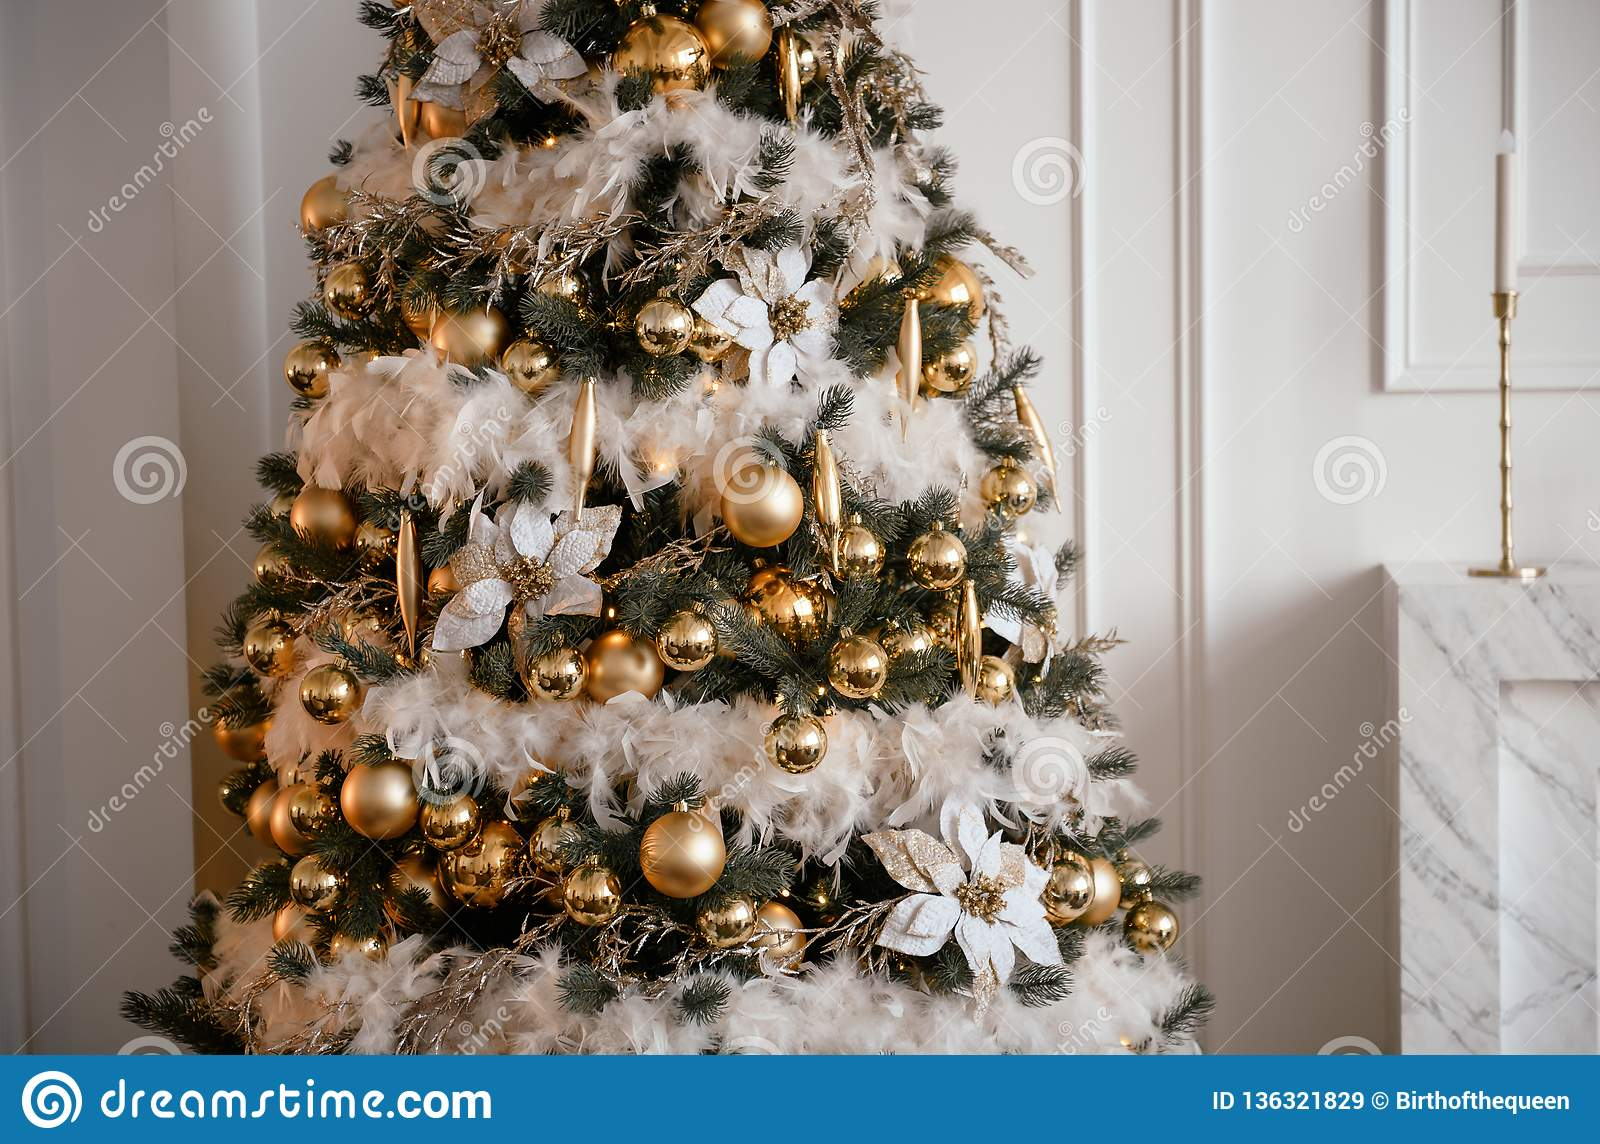 Stylish Christmas Living Room Decor In Gold And Silver Tones A Large Beautifully Decorated Christmas Tree Stands In The Room Next Stock Image Image Of Holiday Abstract 136321829